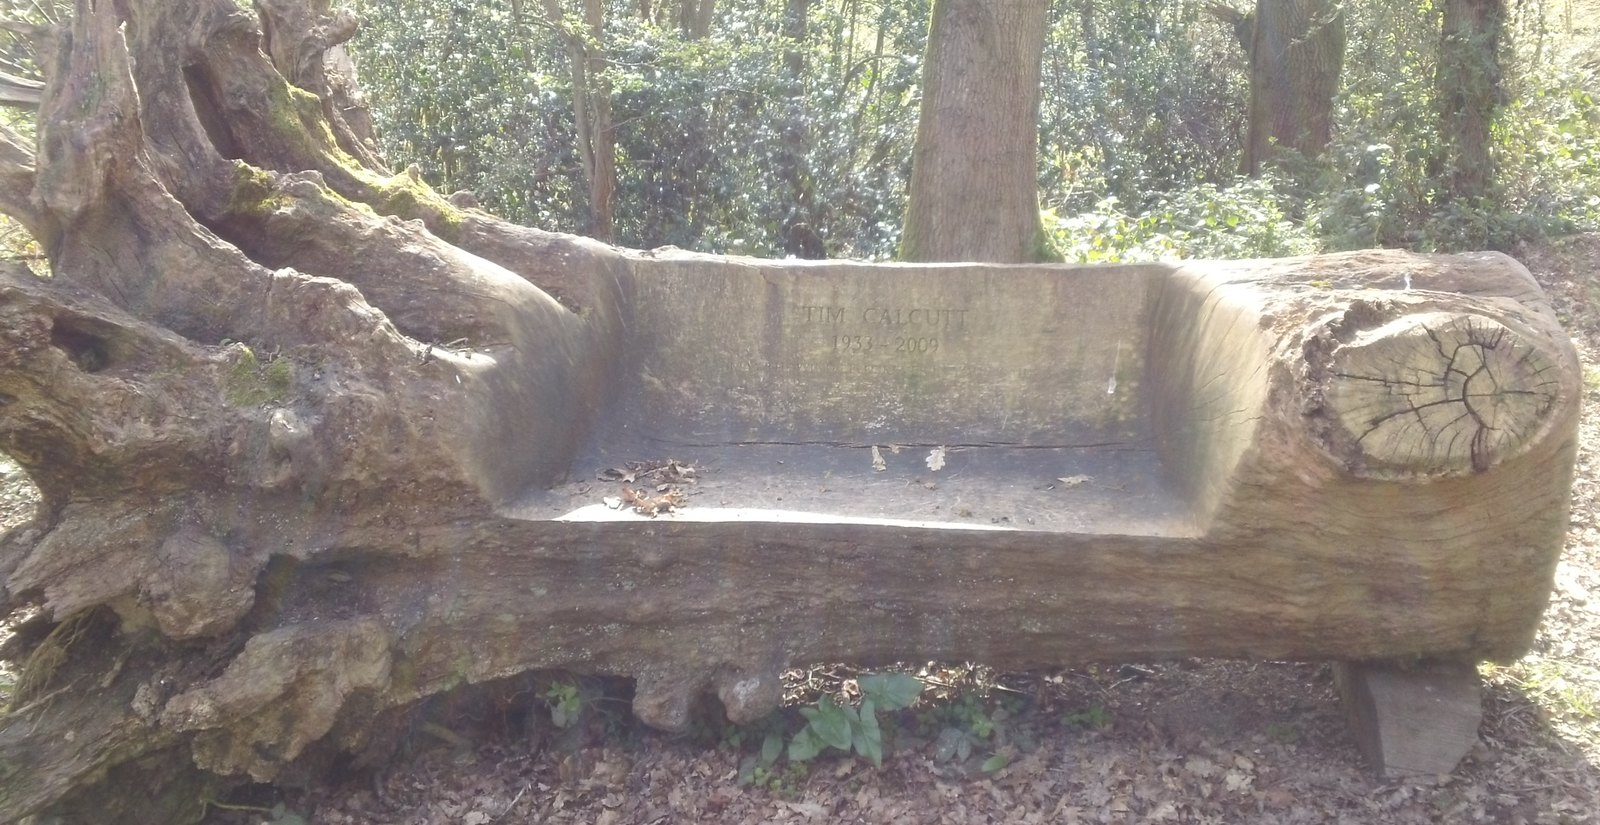 'Tim Calcutt 1933 - 2009' Carved wooden bench in woodland